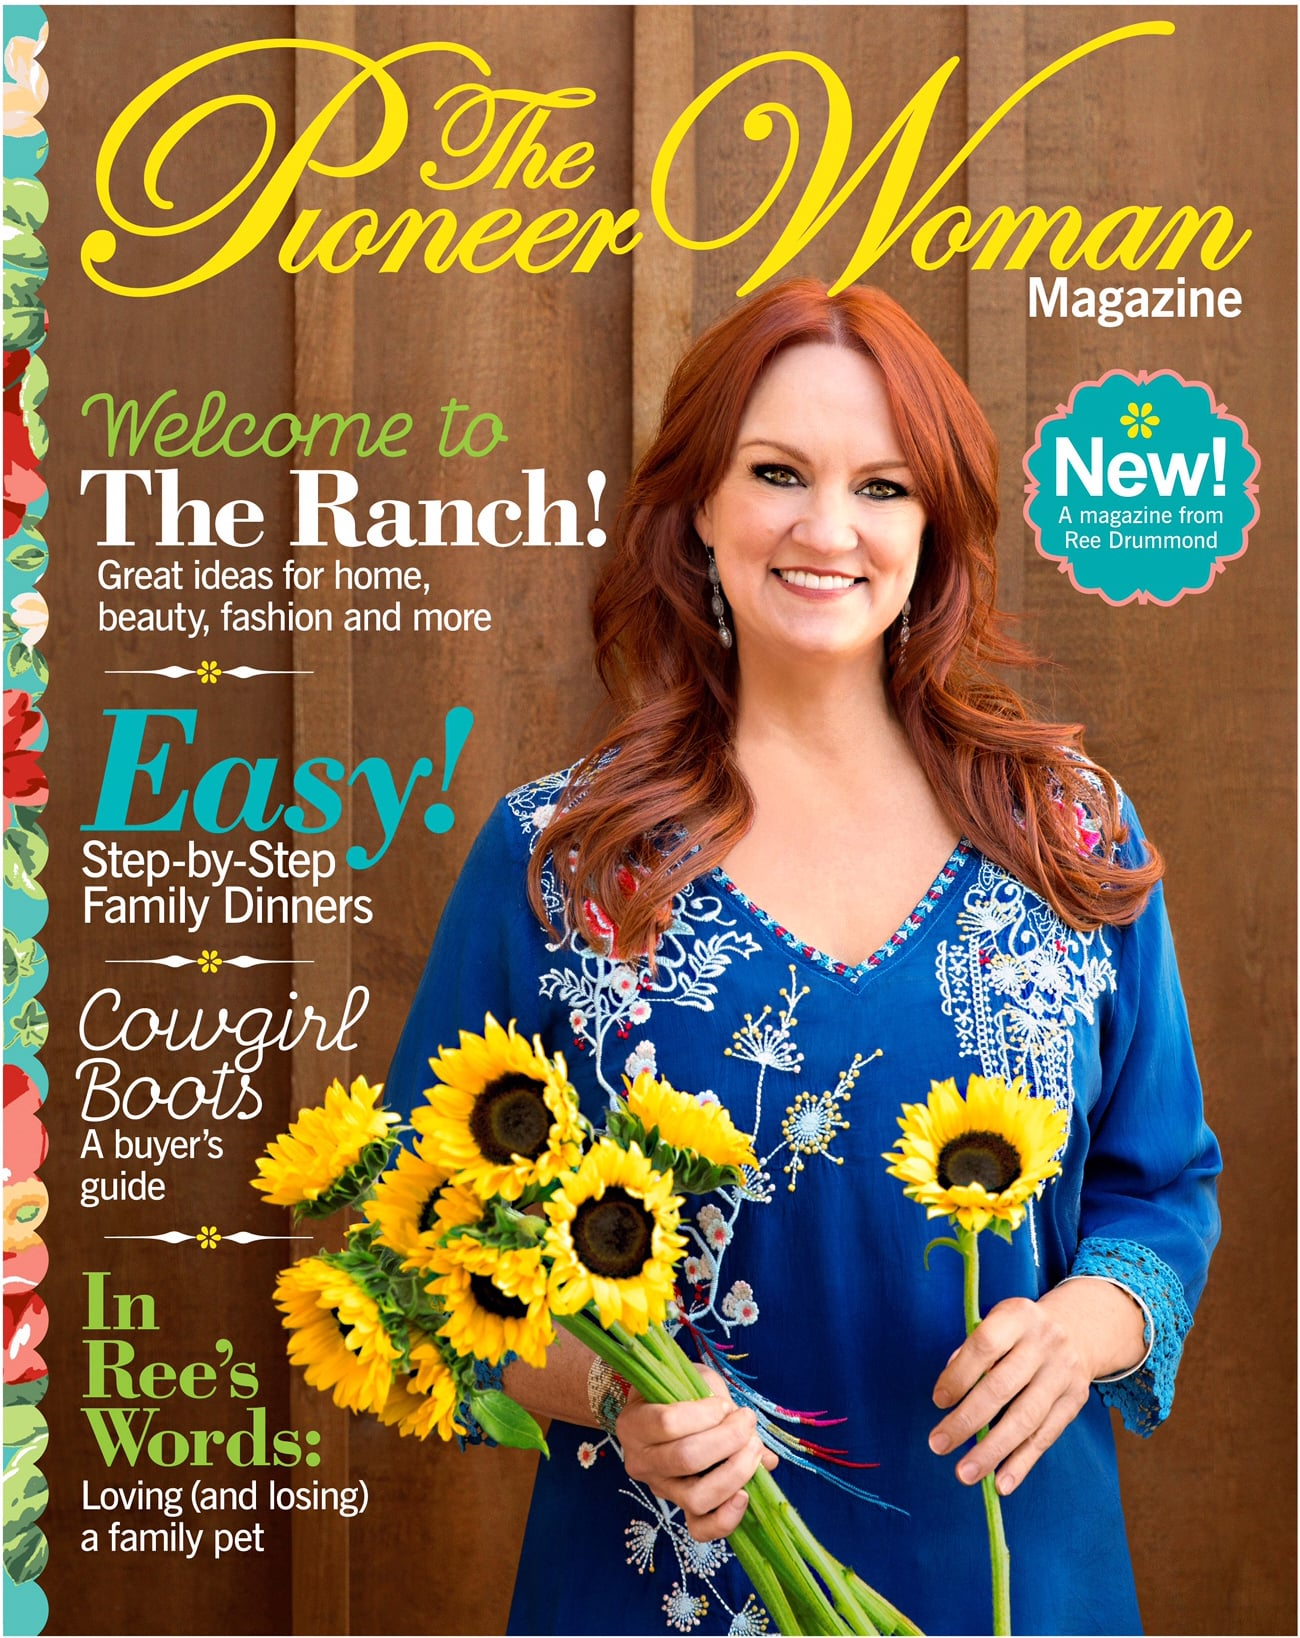 The Pioneer Woman Magazine Summer 2017 Issue Popsugar Food